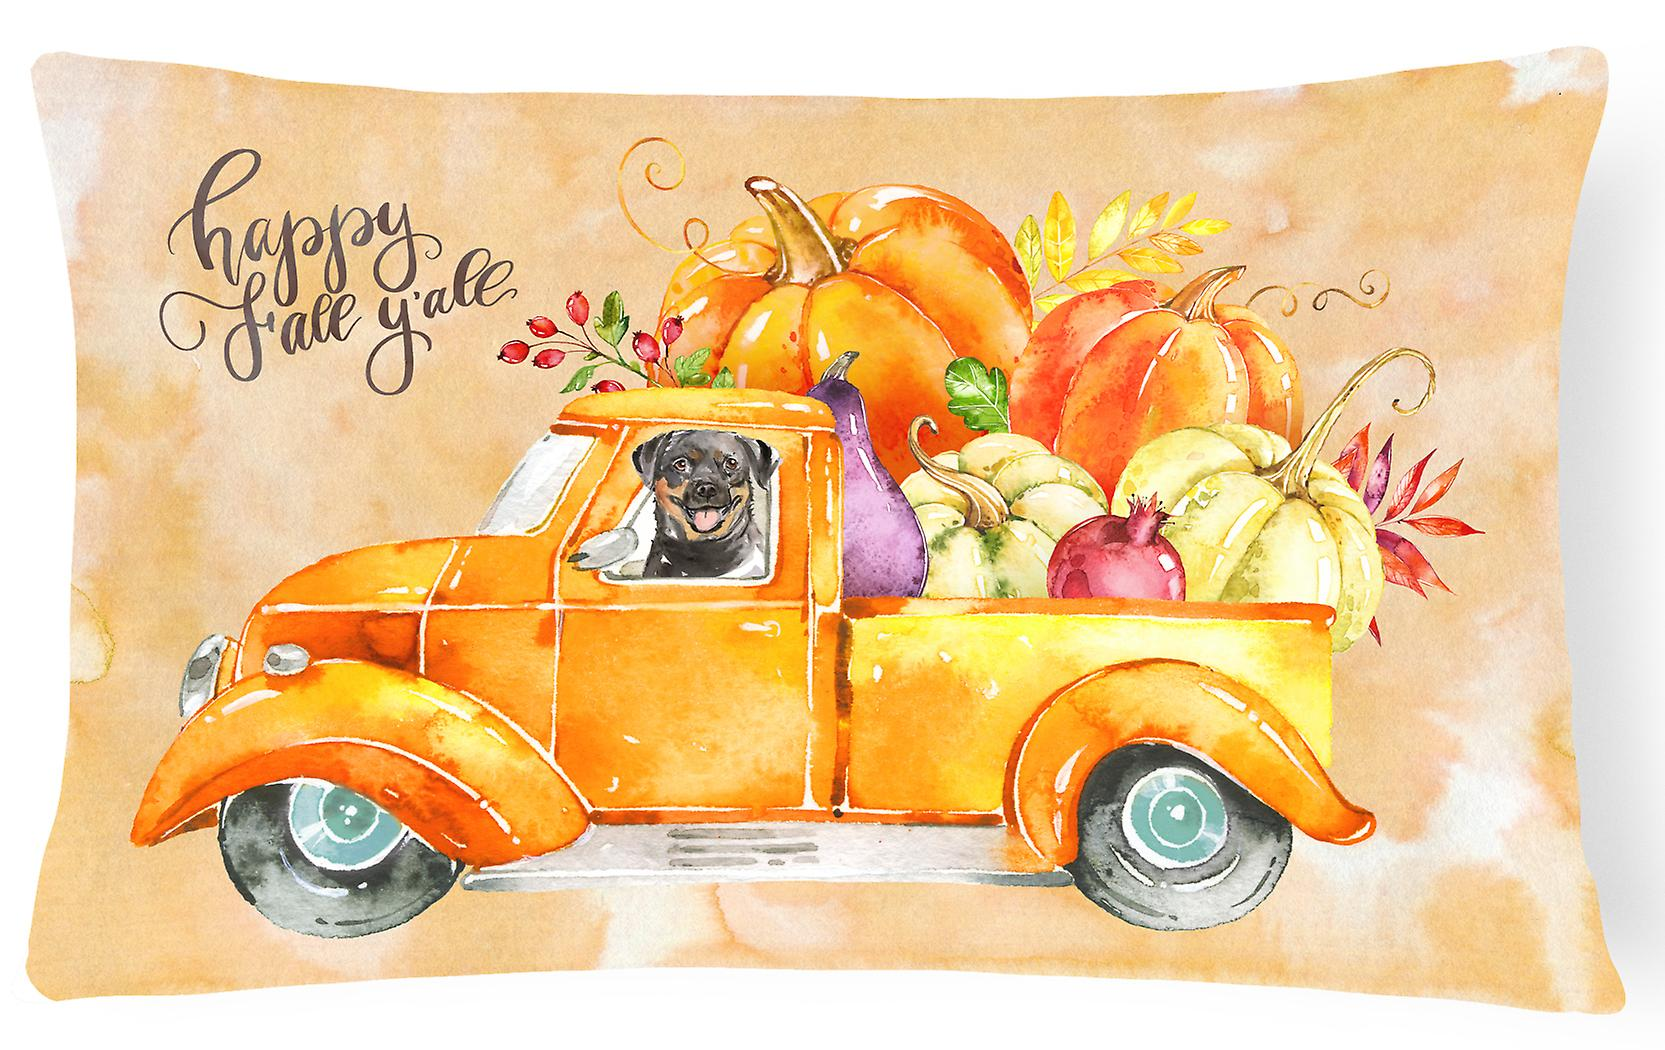 Canvas Pillow Decorative Fall Harvest Rottweiler Fabric 1FJc3TlK